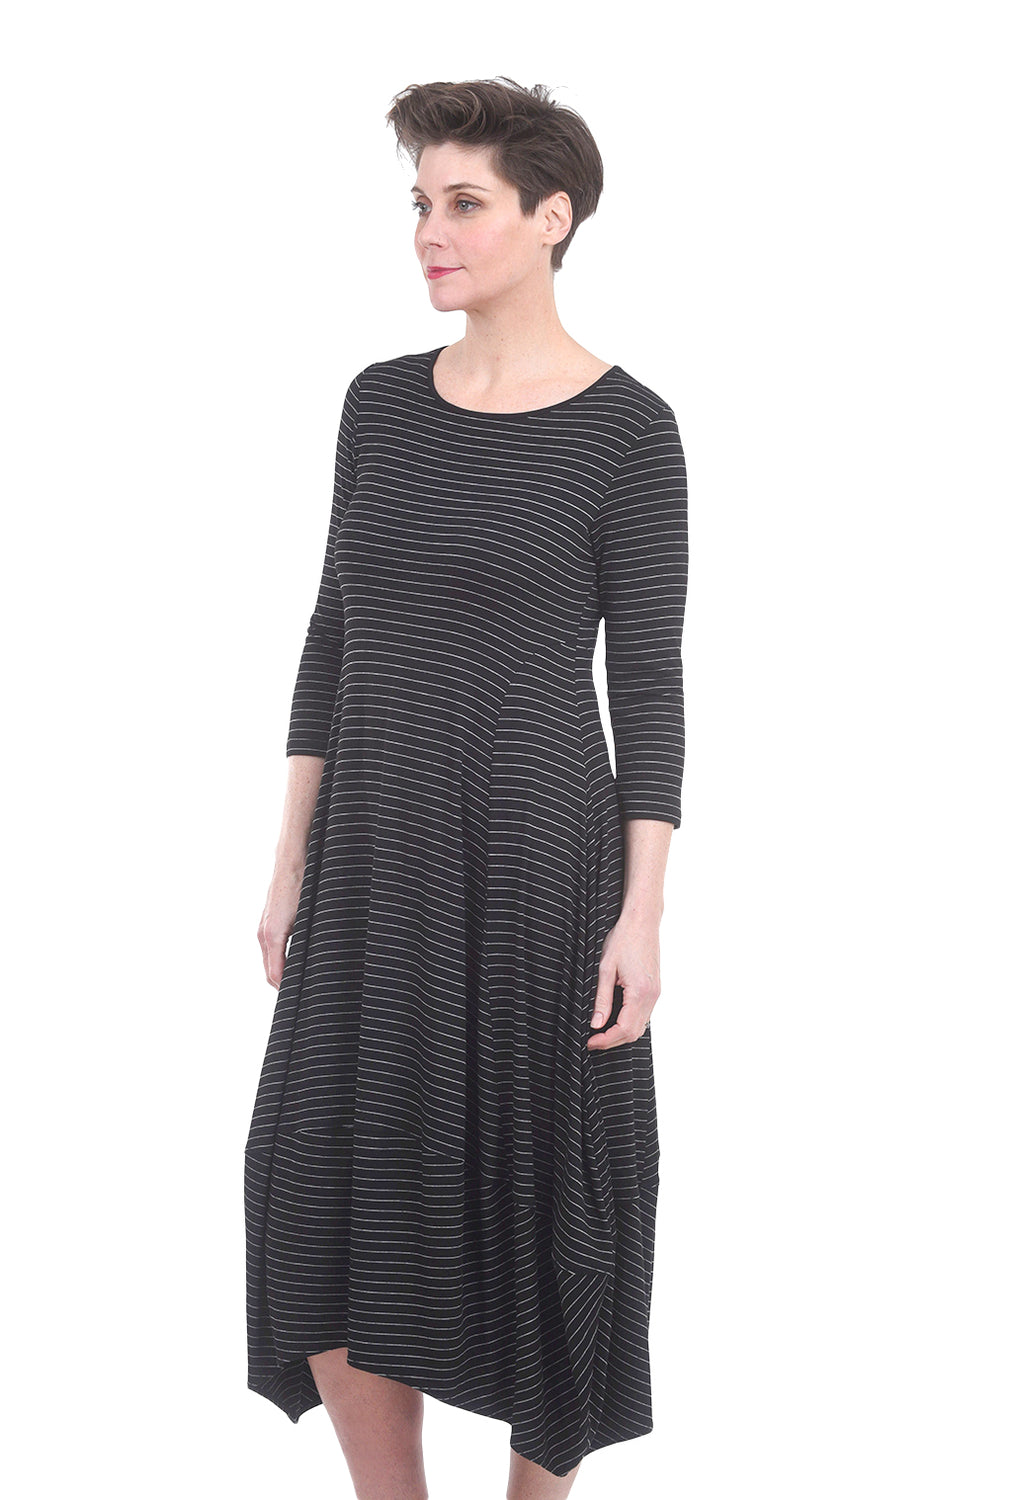 Comfy USA Modal Kati Dress, Black Pinstripe